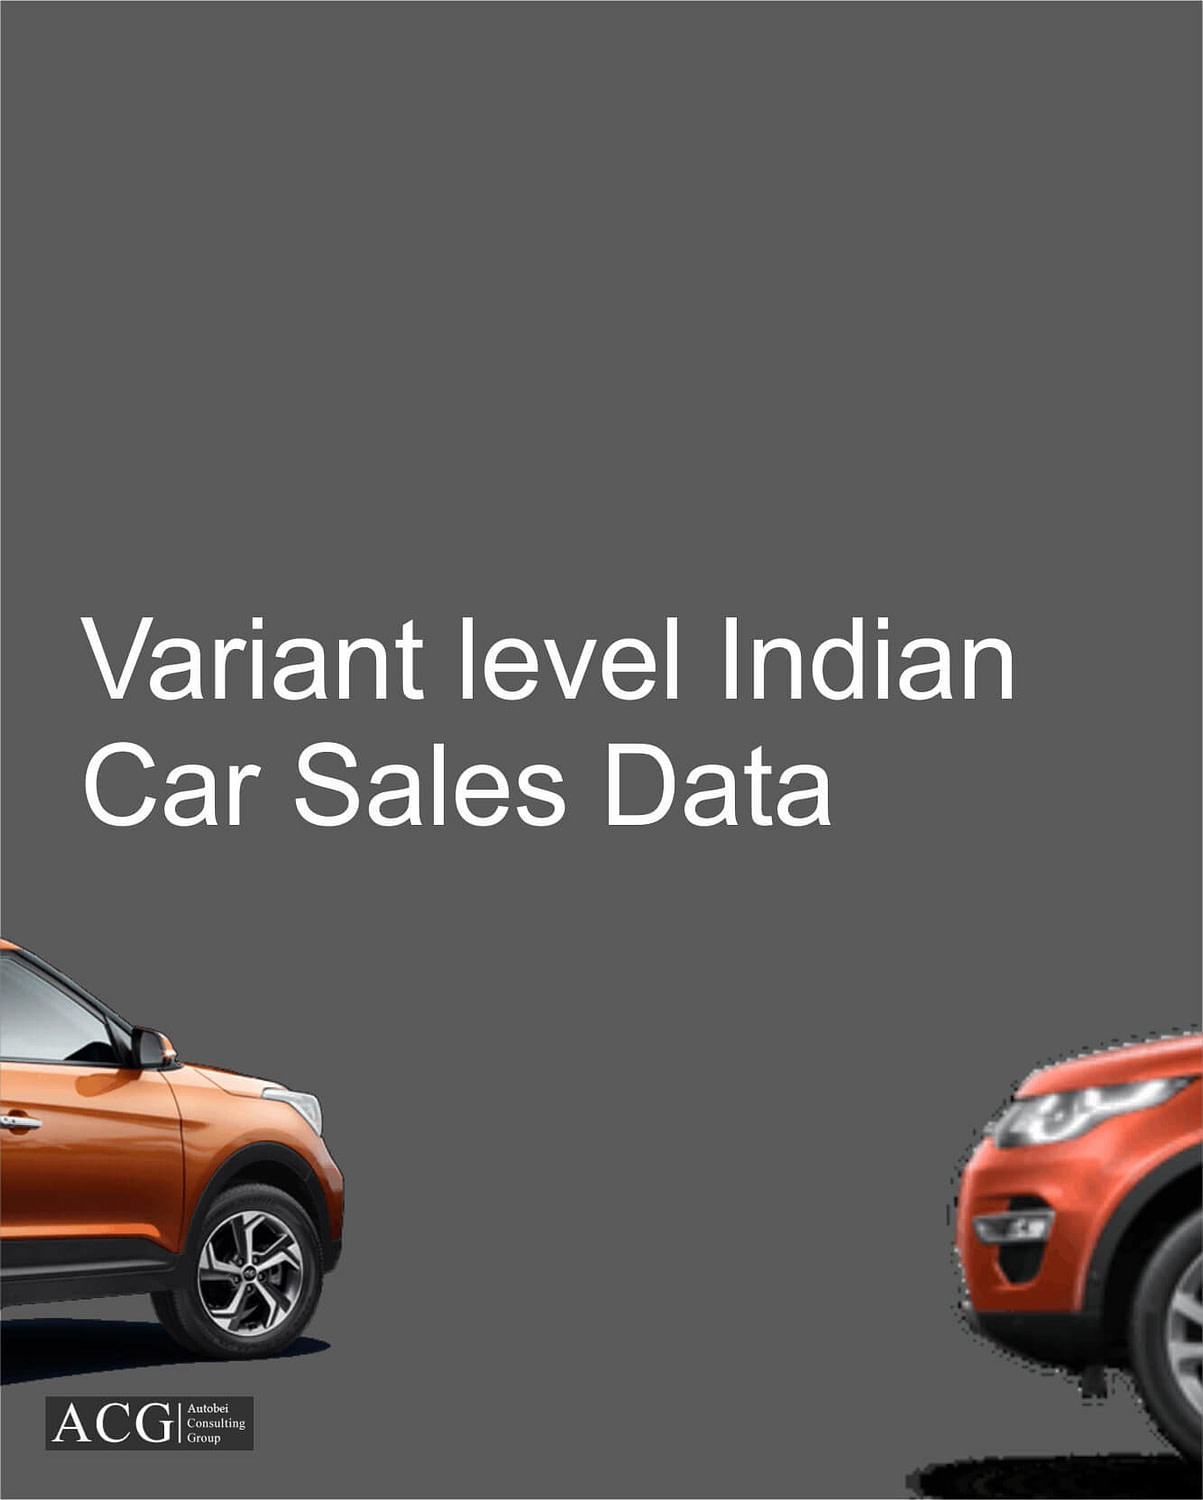 Variant level Indian car sales data